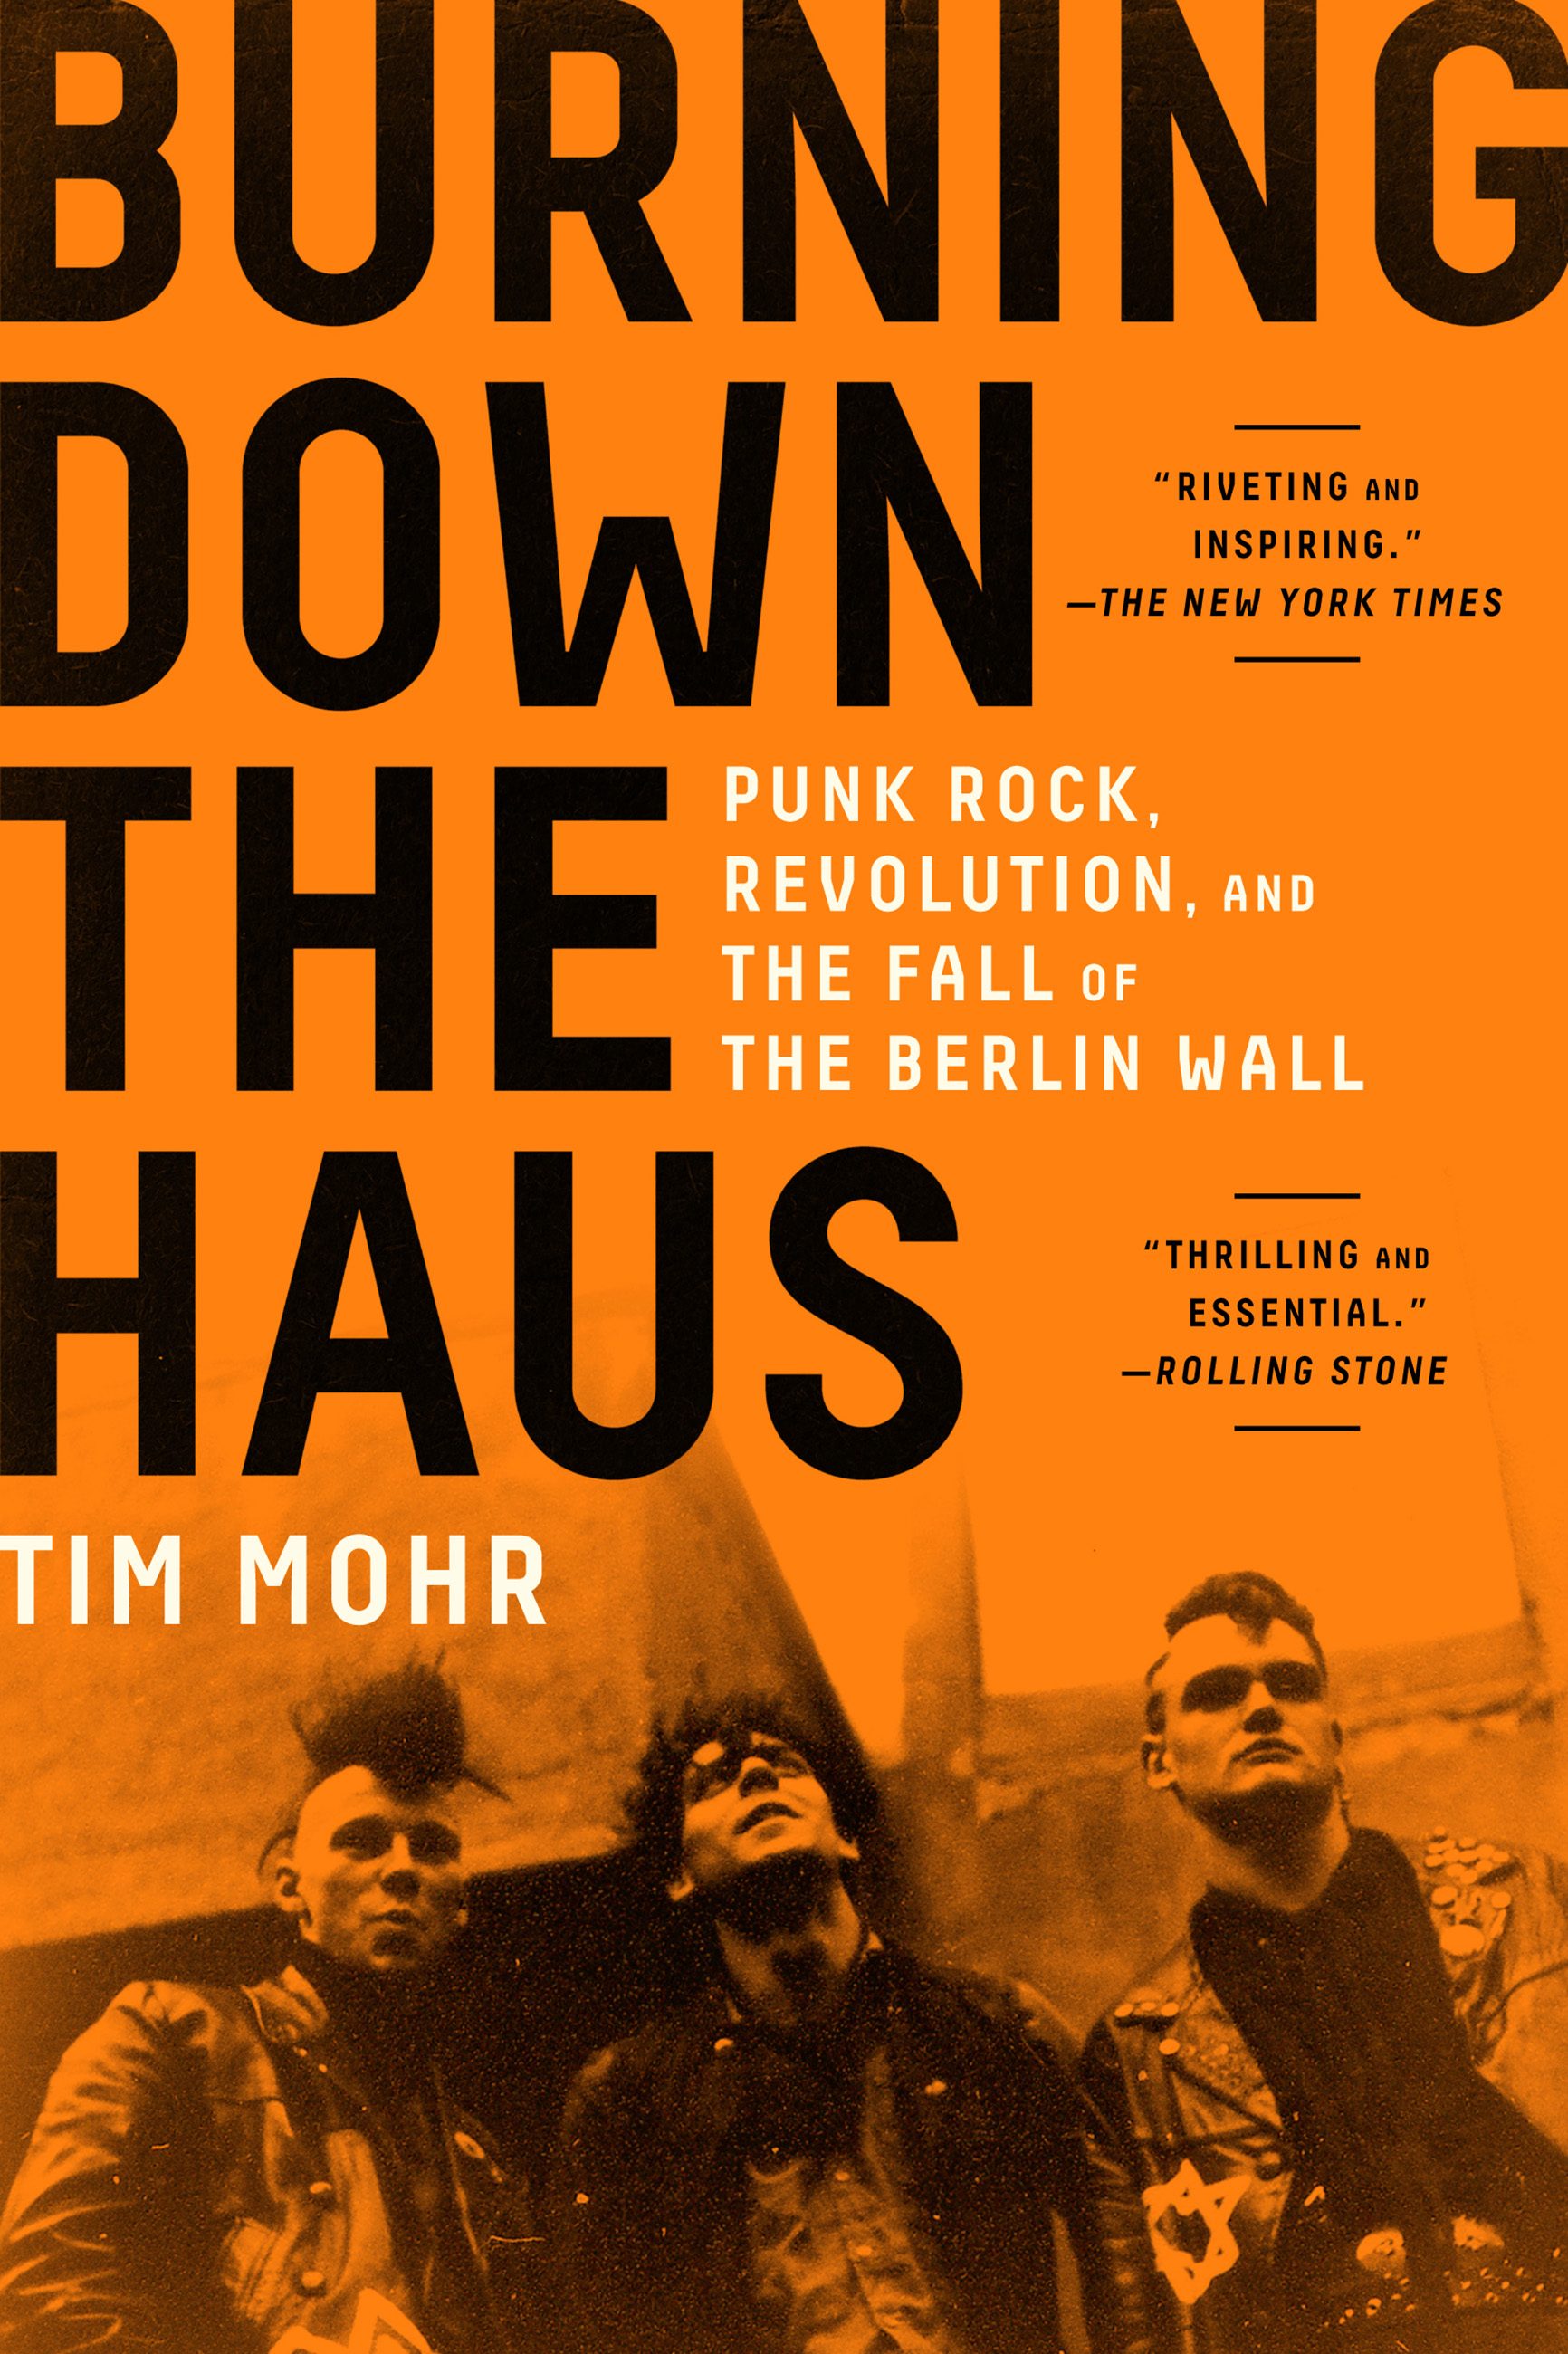 Burning Down the Haus Punk Rock, Revolution, and the Fall of the Berlin Wall